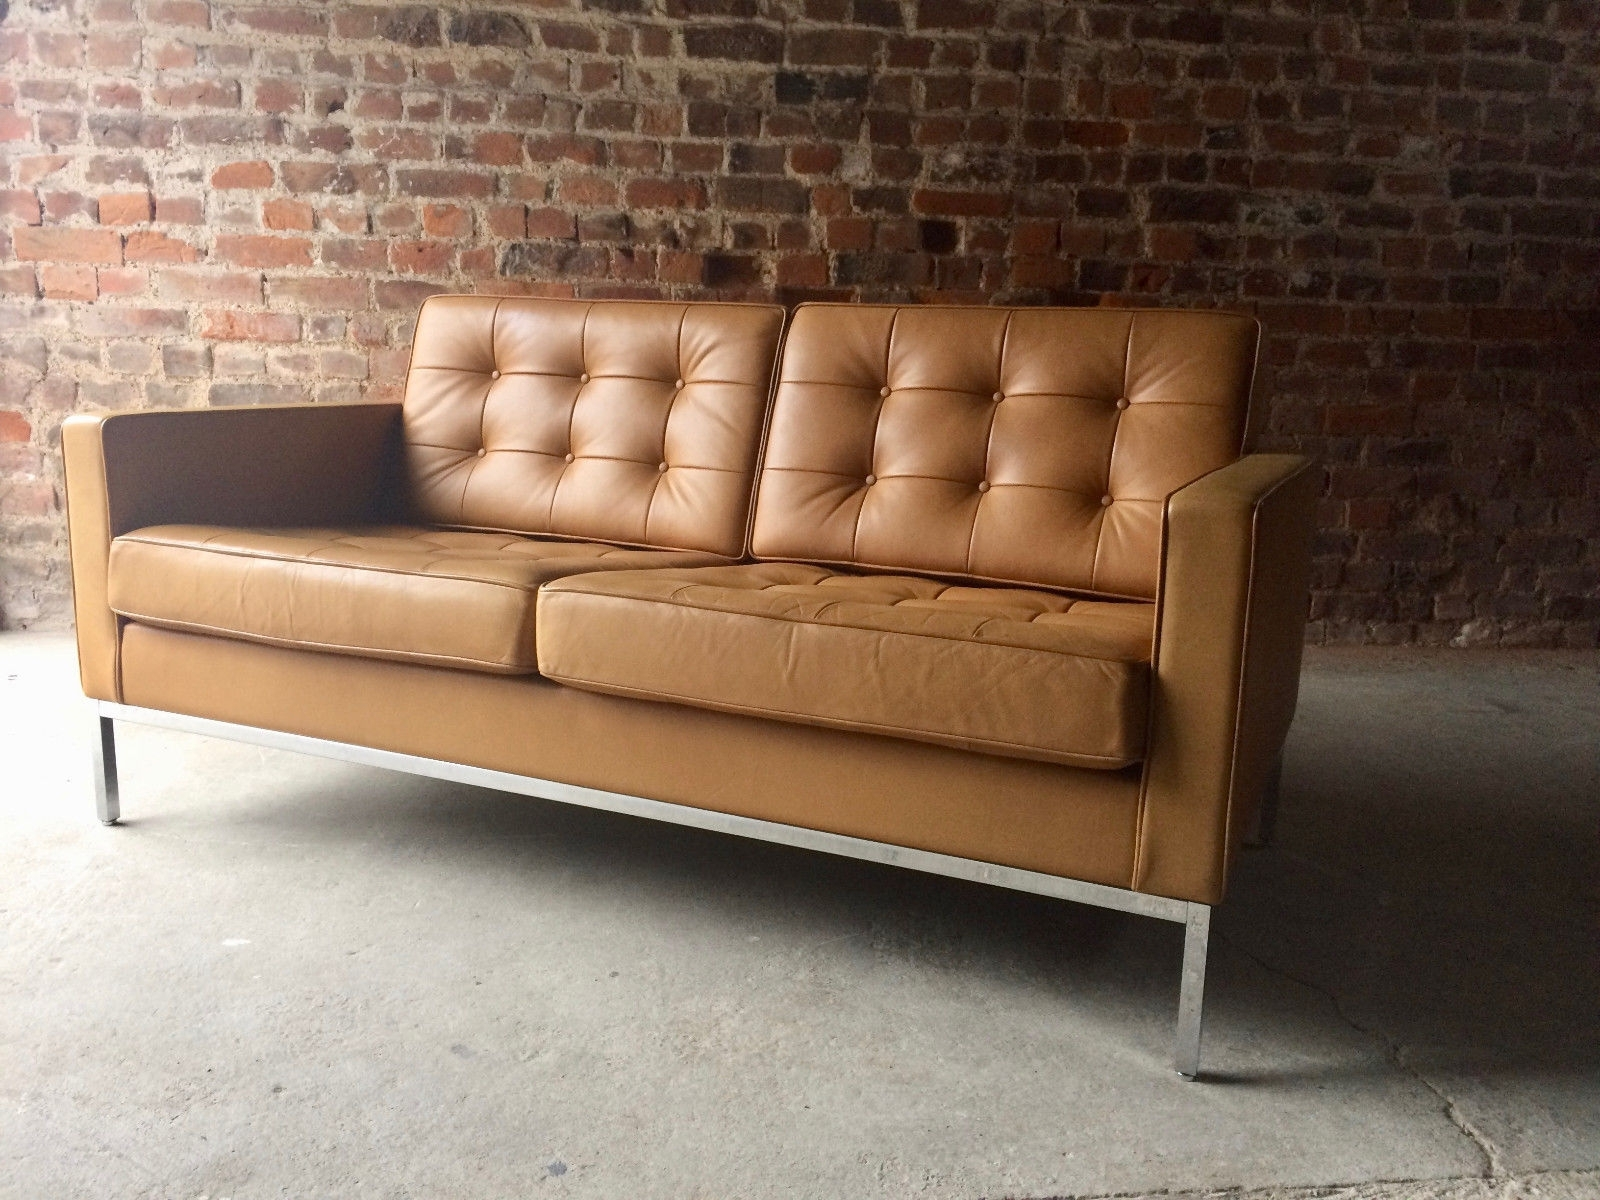 Most Recent Vintage 2 Seater Leather Sofaflorence Knoll For Knoll For Sale Throughout Florence Knoll Leather Sofas (View 15 of 20)